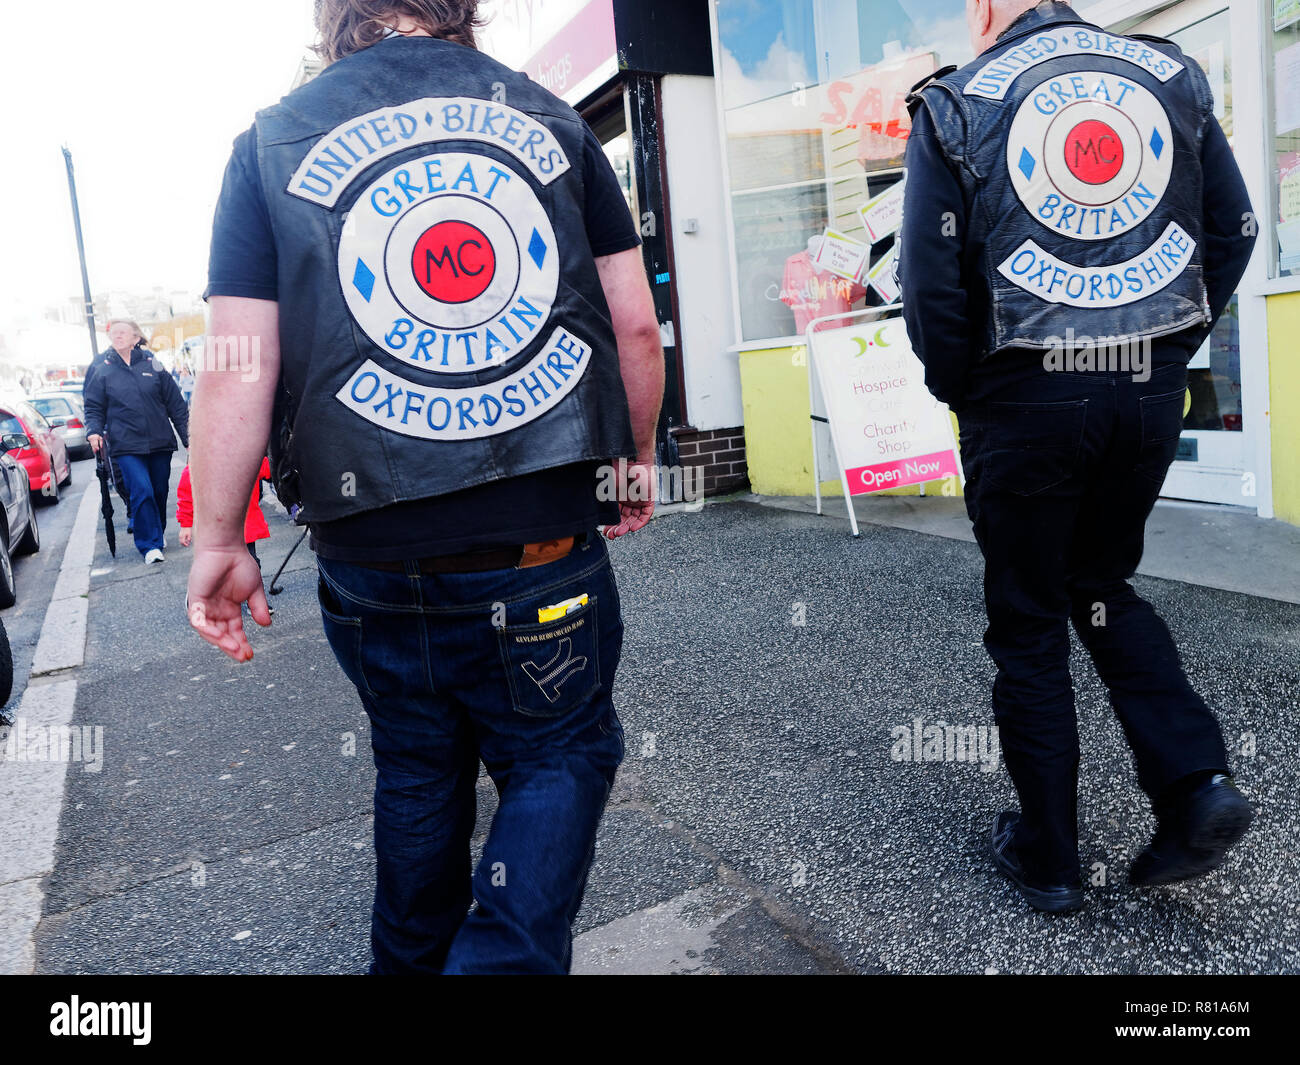 Motor Cycle Club Stock Photos & Motor Cycle Club Stock Images - Alamy